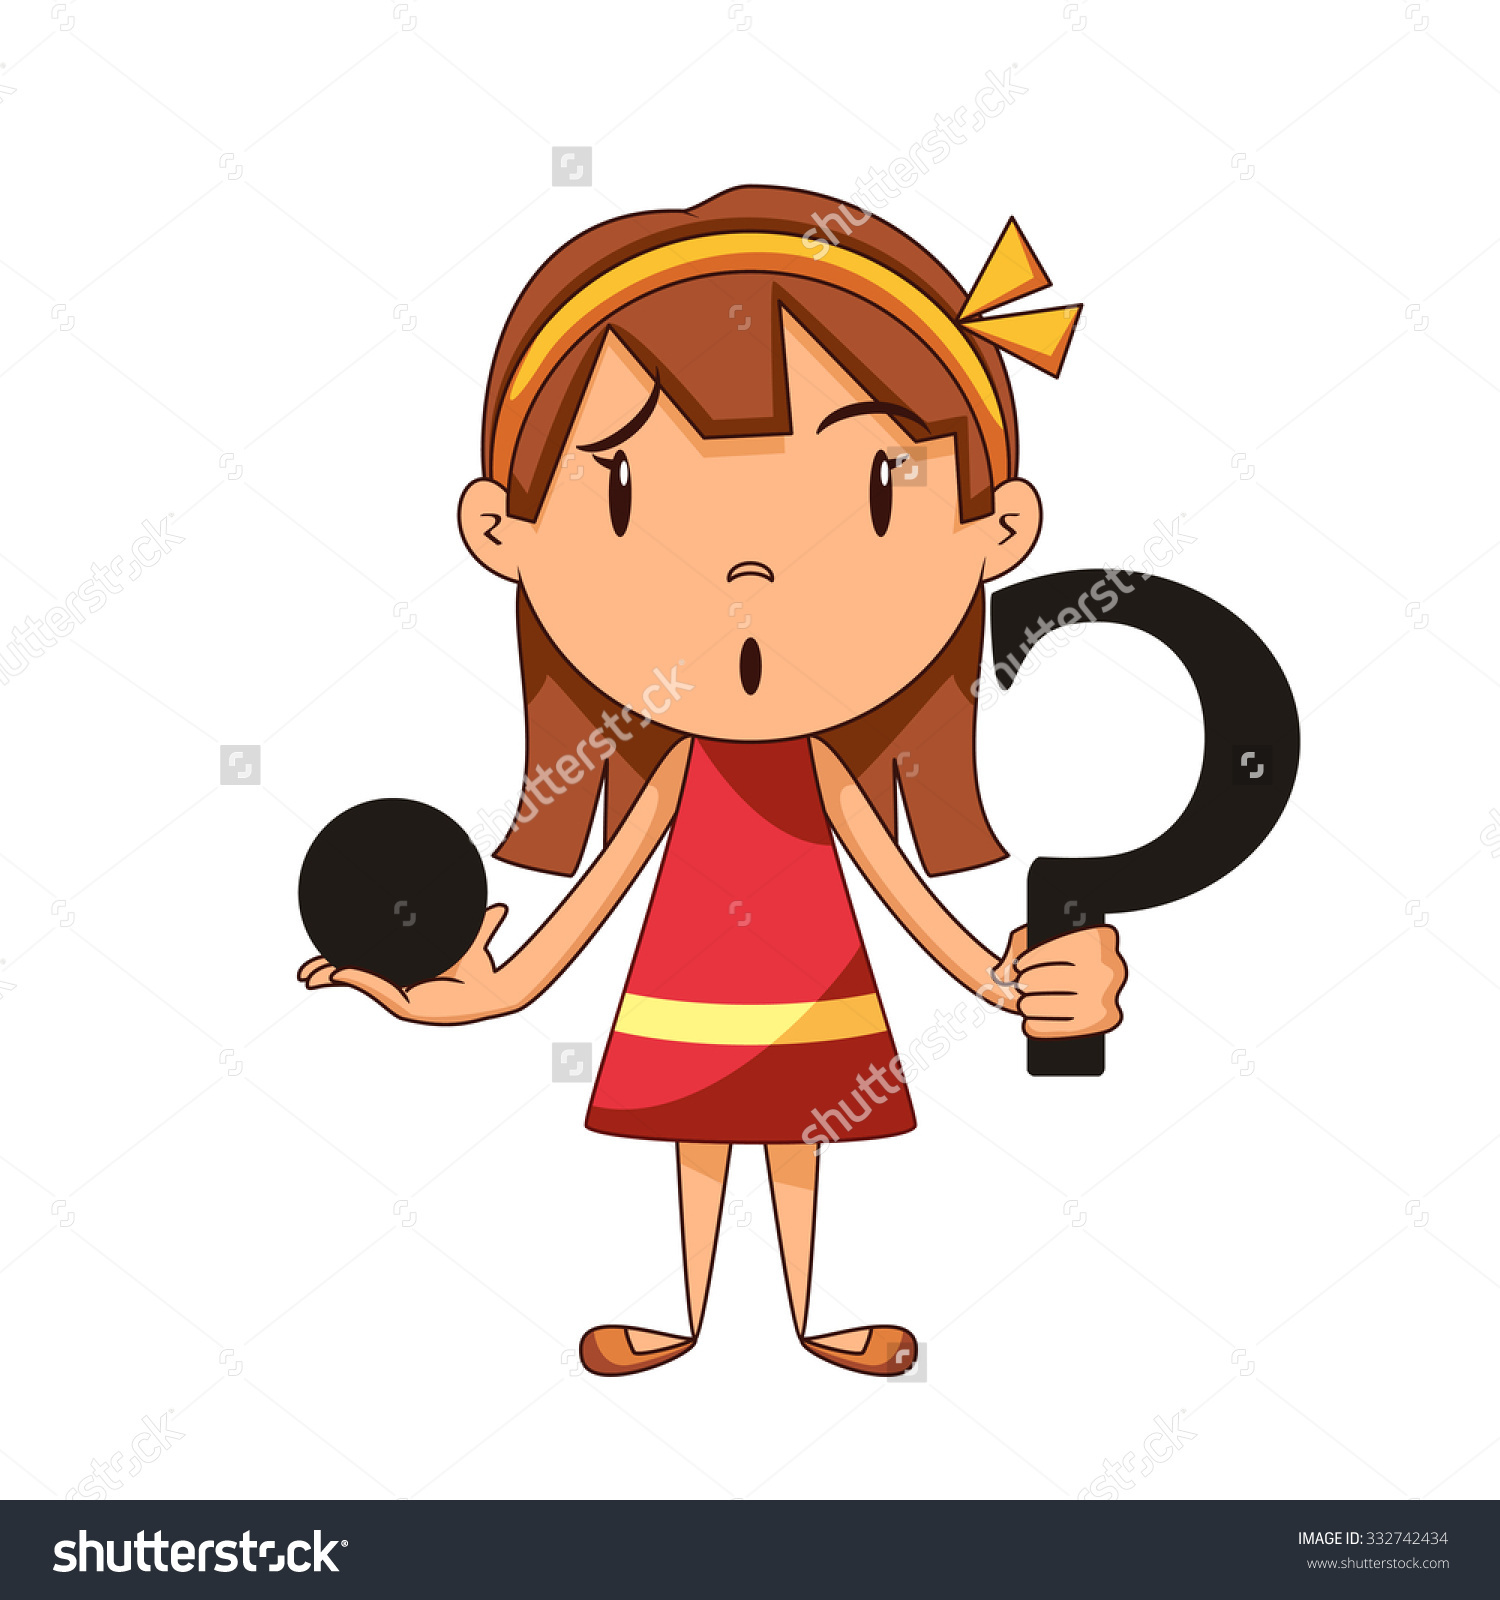 Confused Girl Riddle Vector Illustration Stock Vector 332742434.